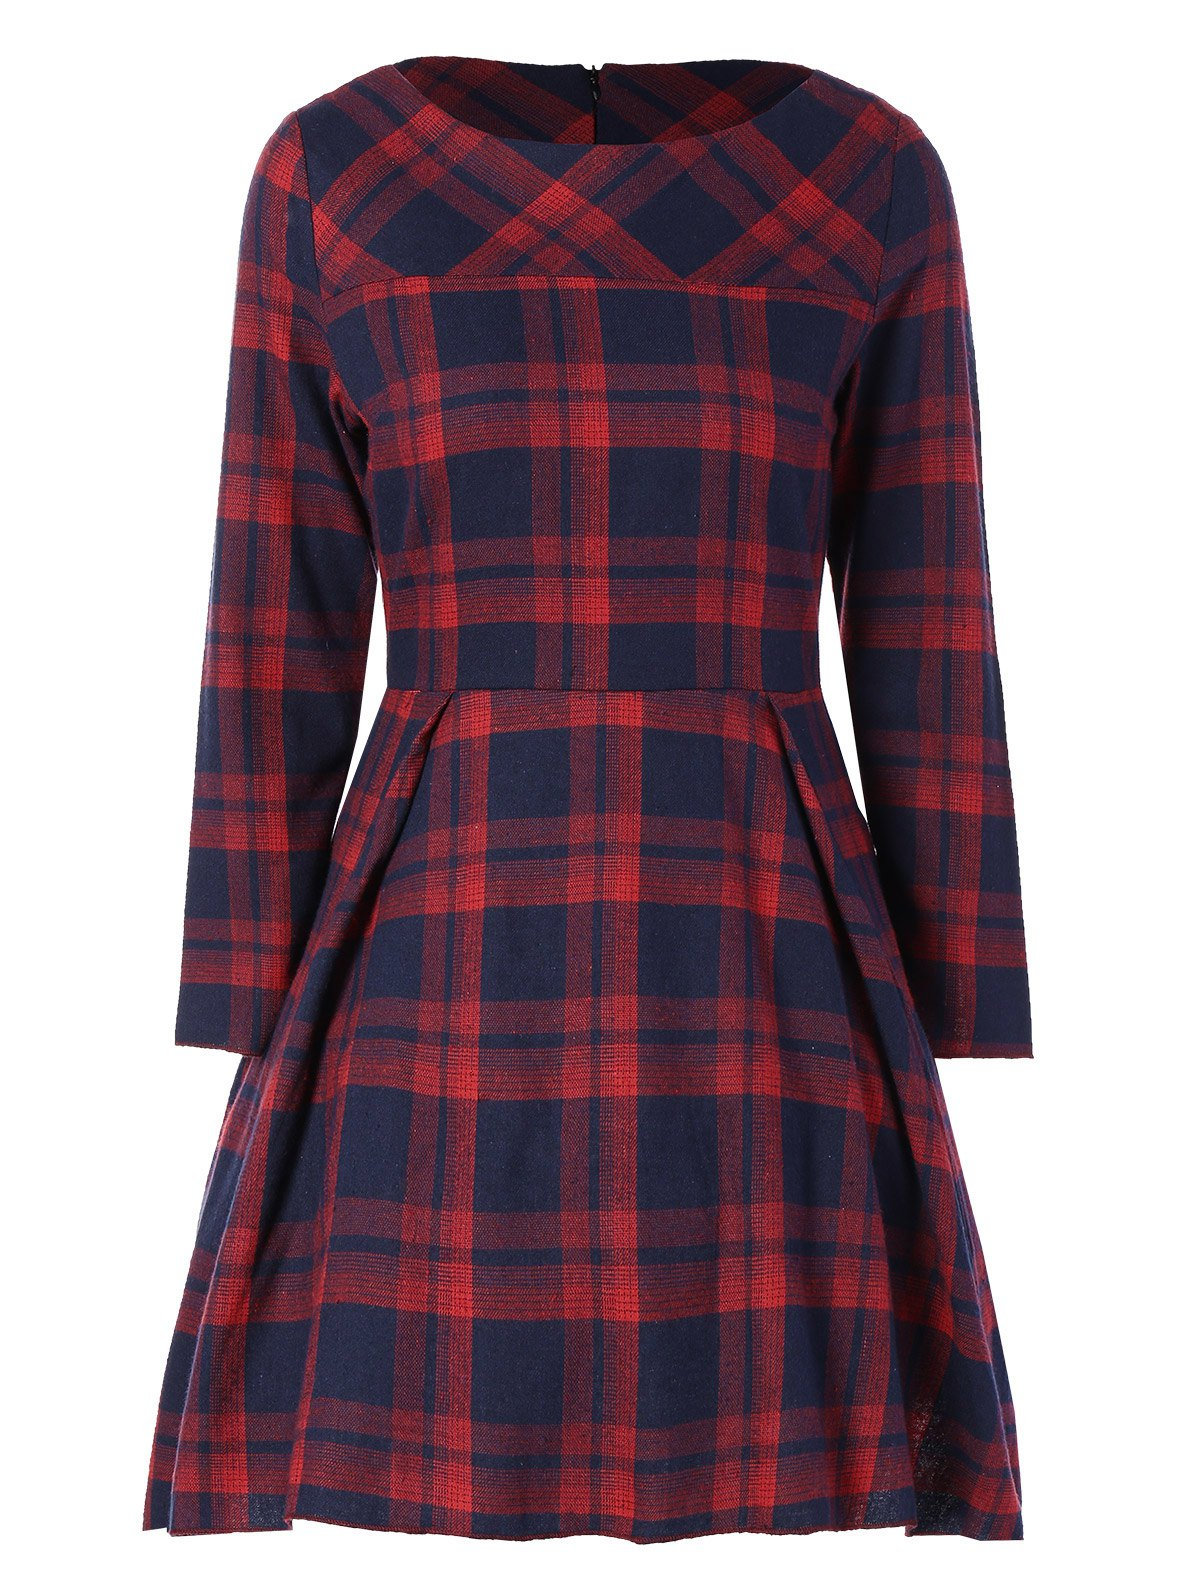 Latest Tartan Plaid Flare Dress